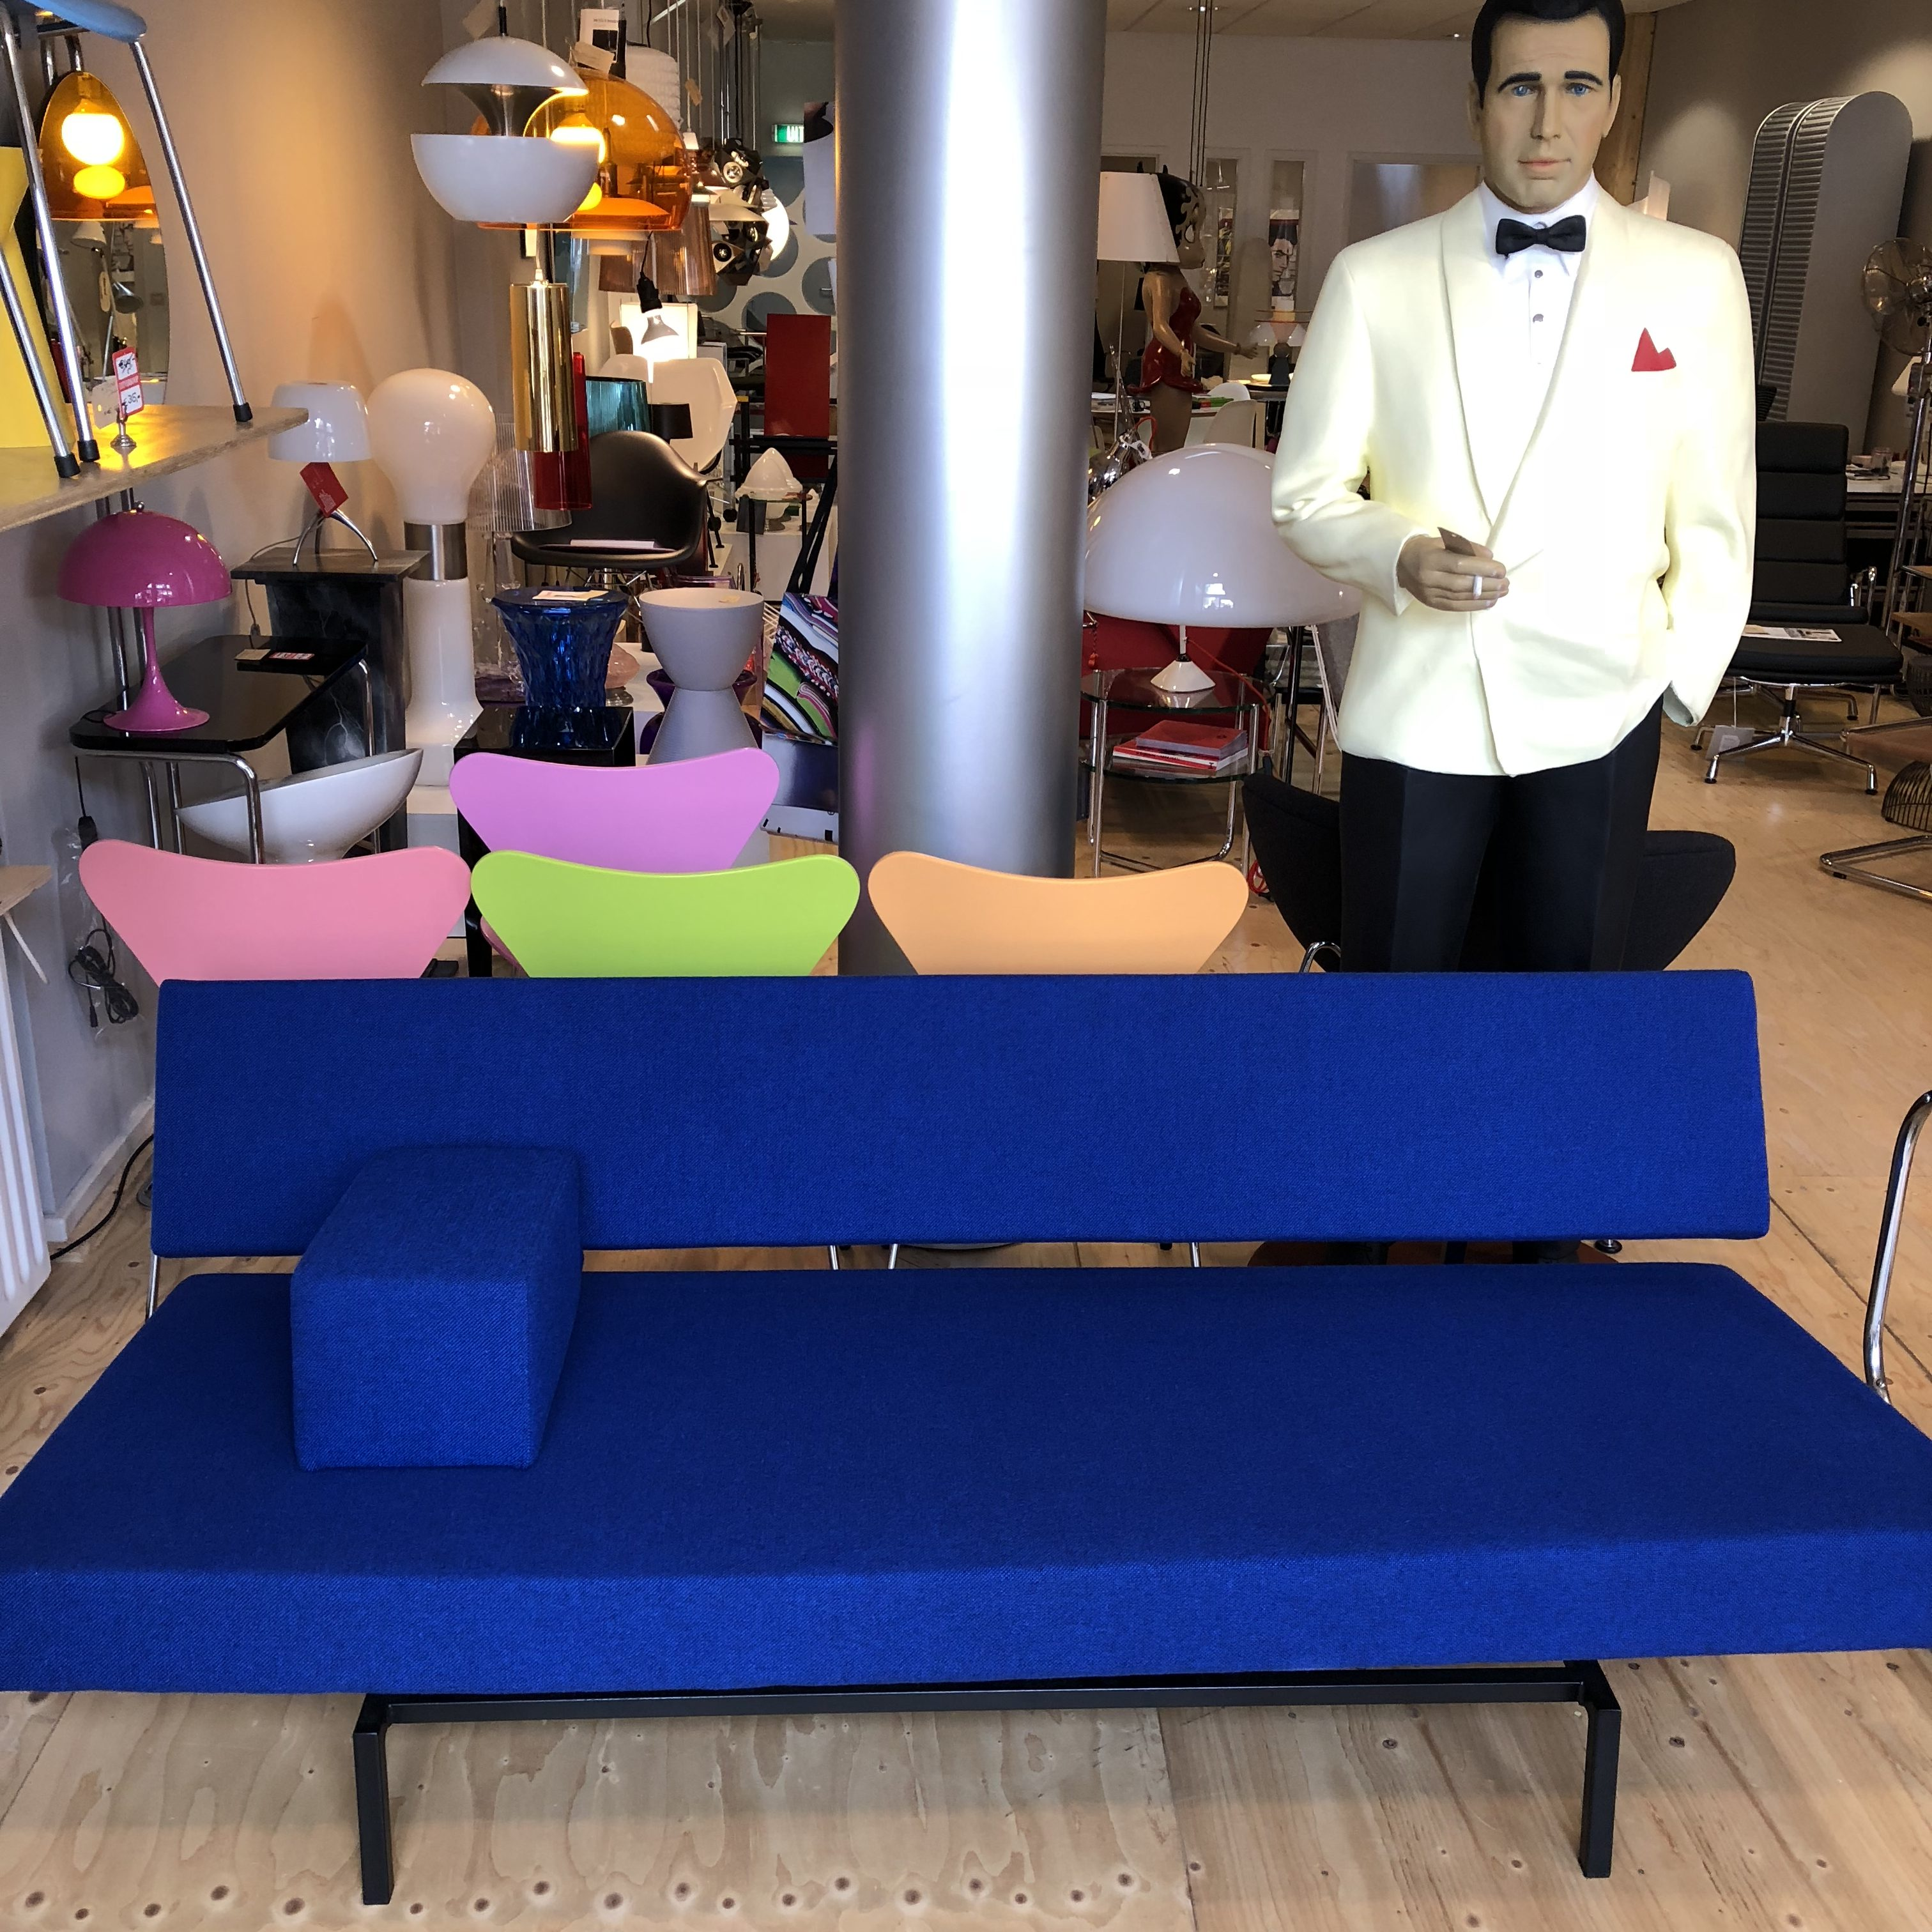 Design Bank Martin Visser.Spectrum Bank Martin Visser Hello Design Classics